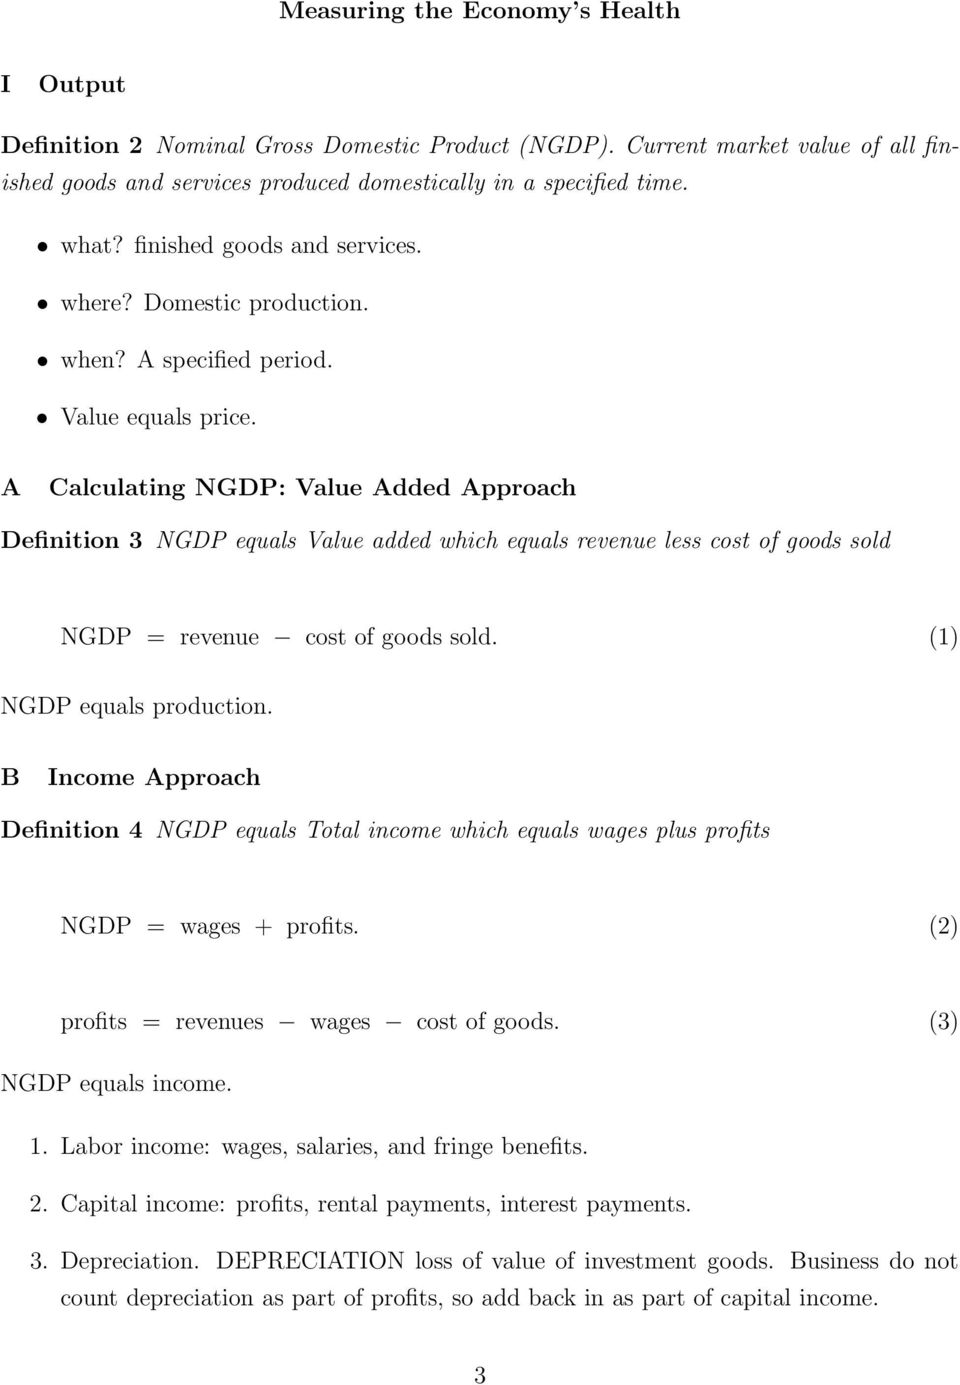 A Calculating NGDP: Value Added Approach Definition 3 NGDP equals Value added which equals revenue less cost of goods sold NGDP = revenue cost of goods sold. (1) NGDP equals production.